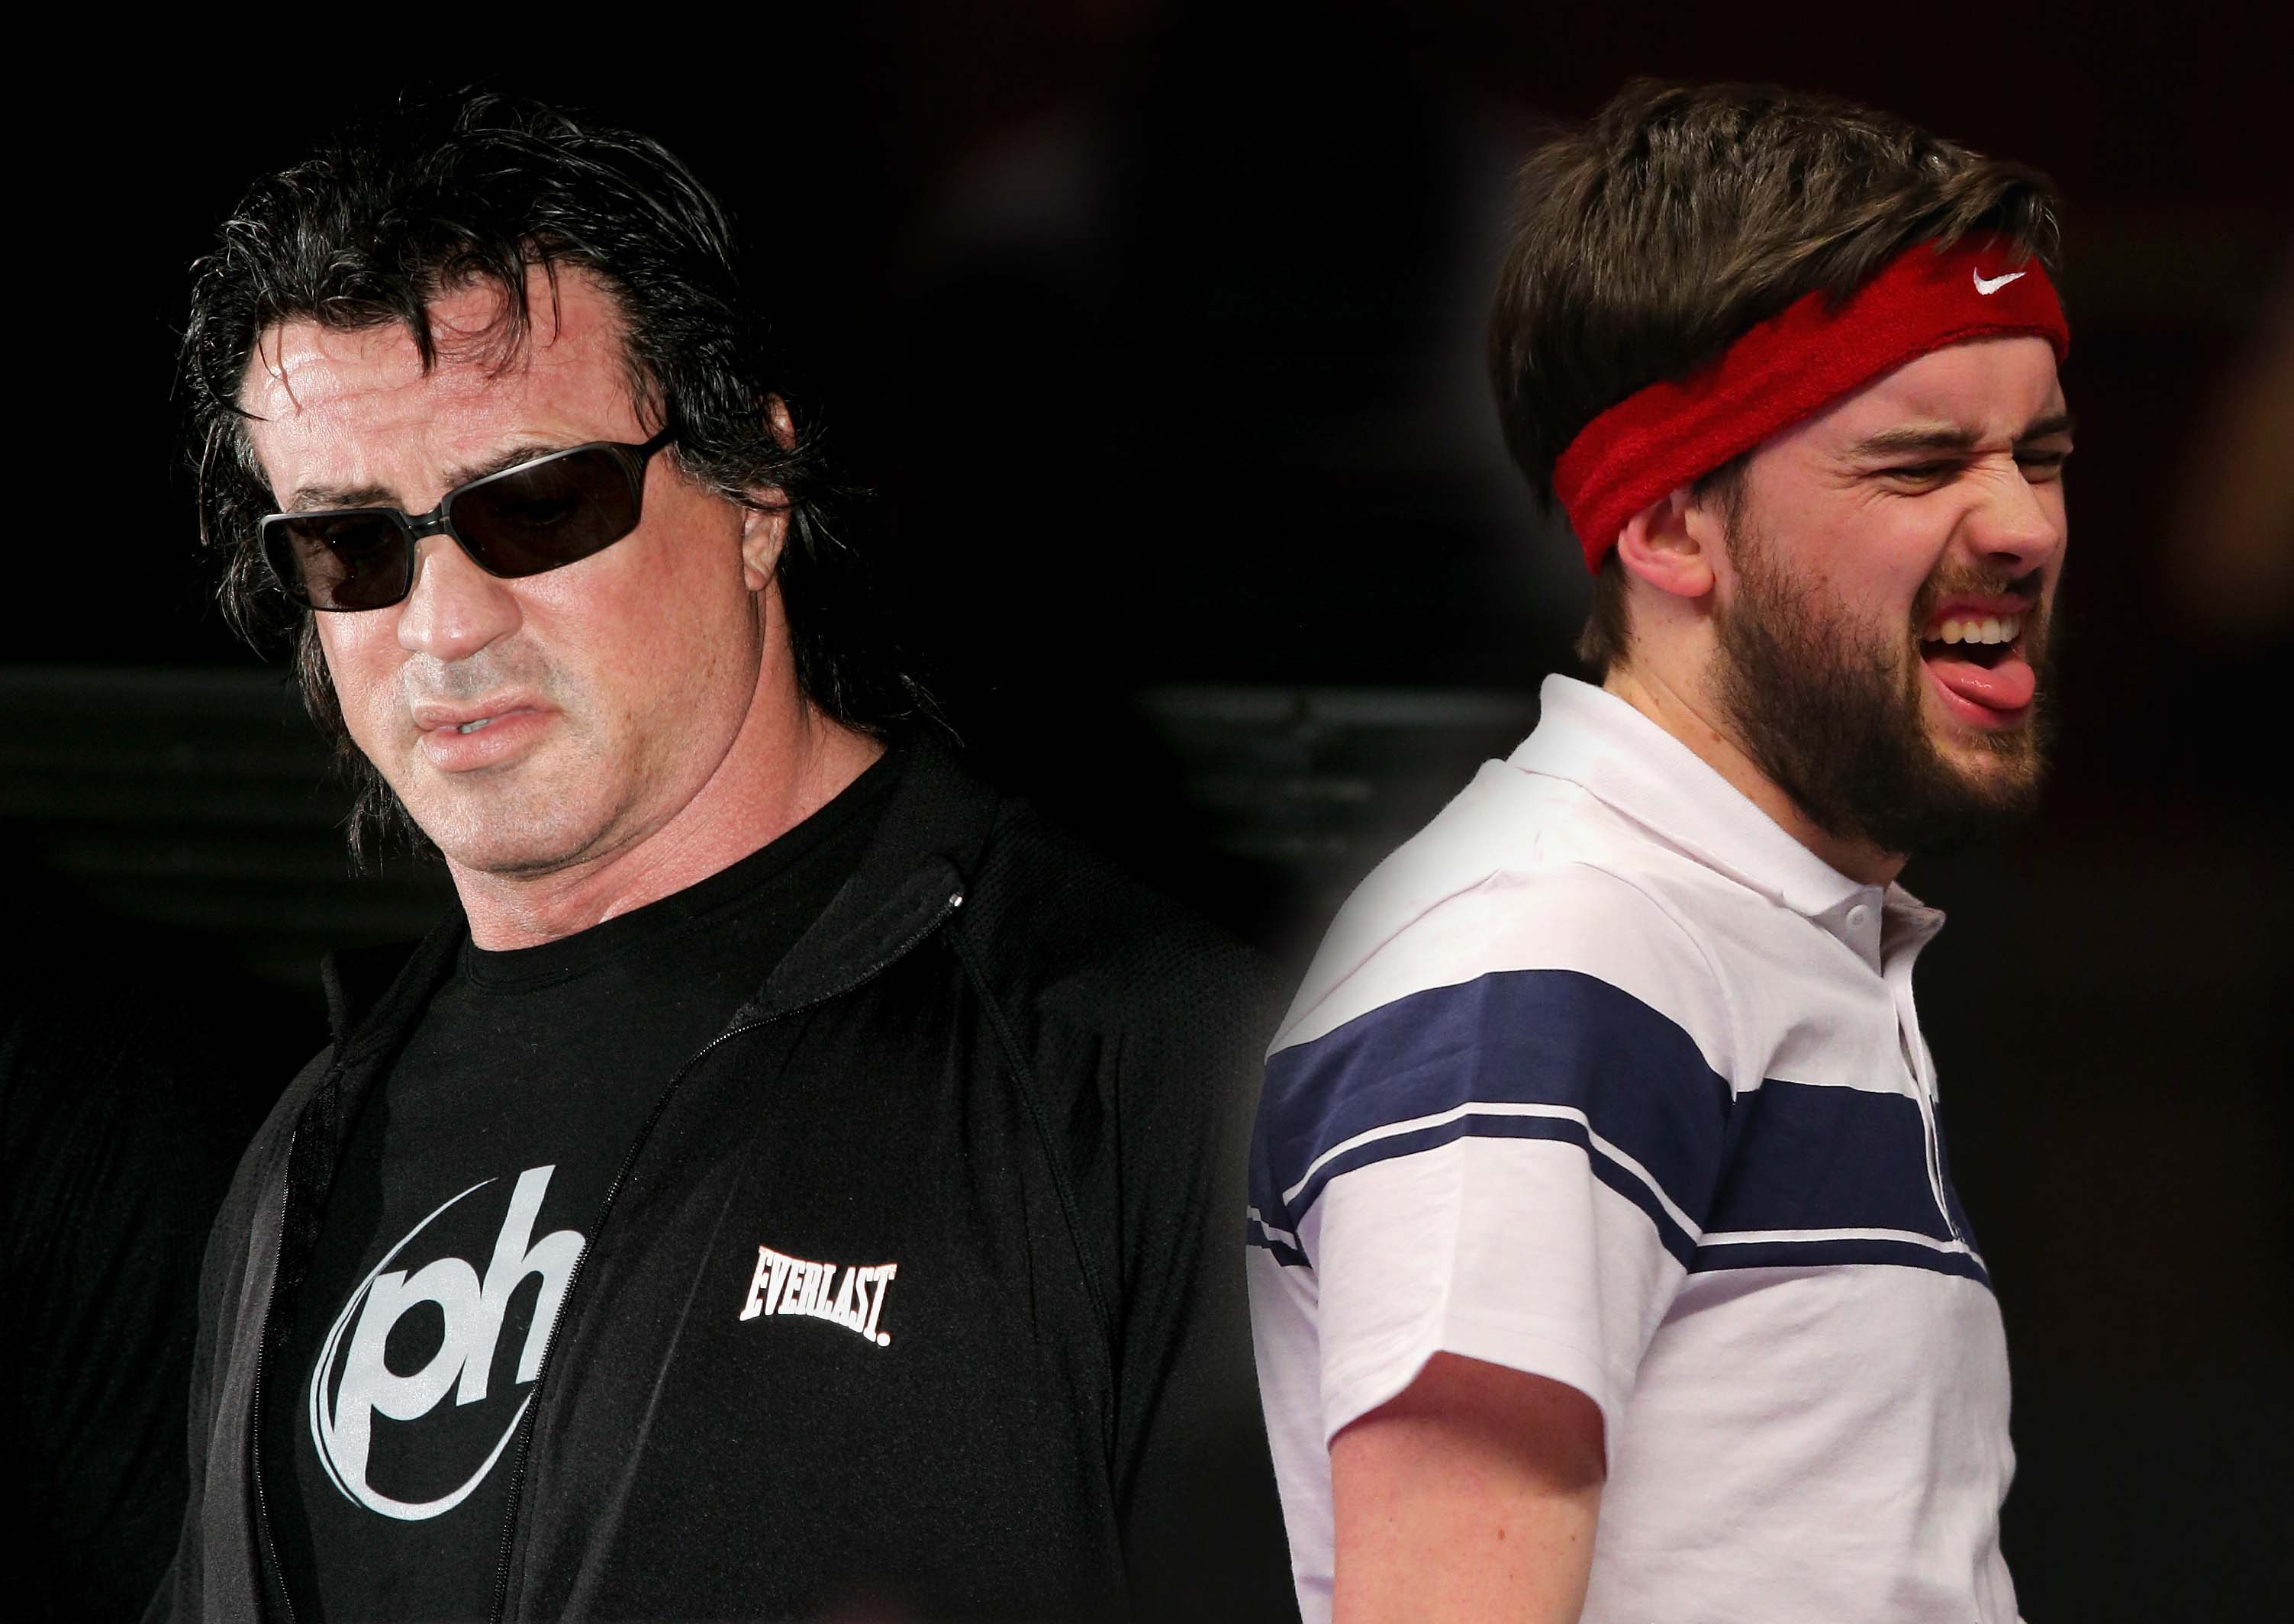 Sly Stallone is not happy with Jack Whitehall